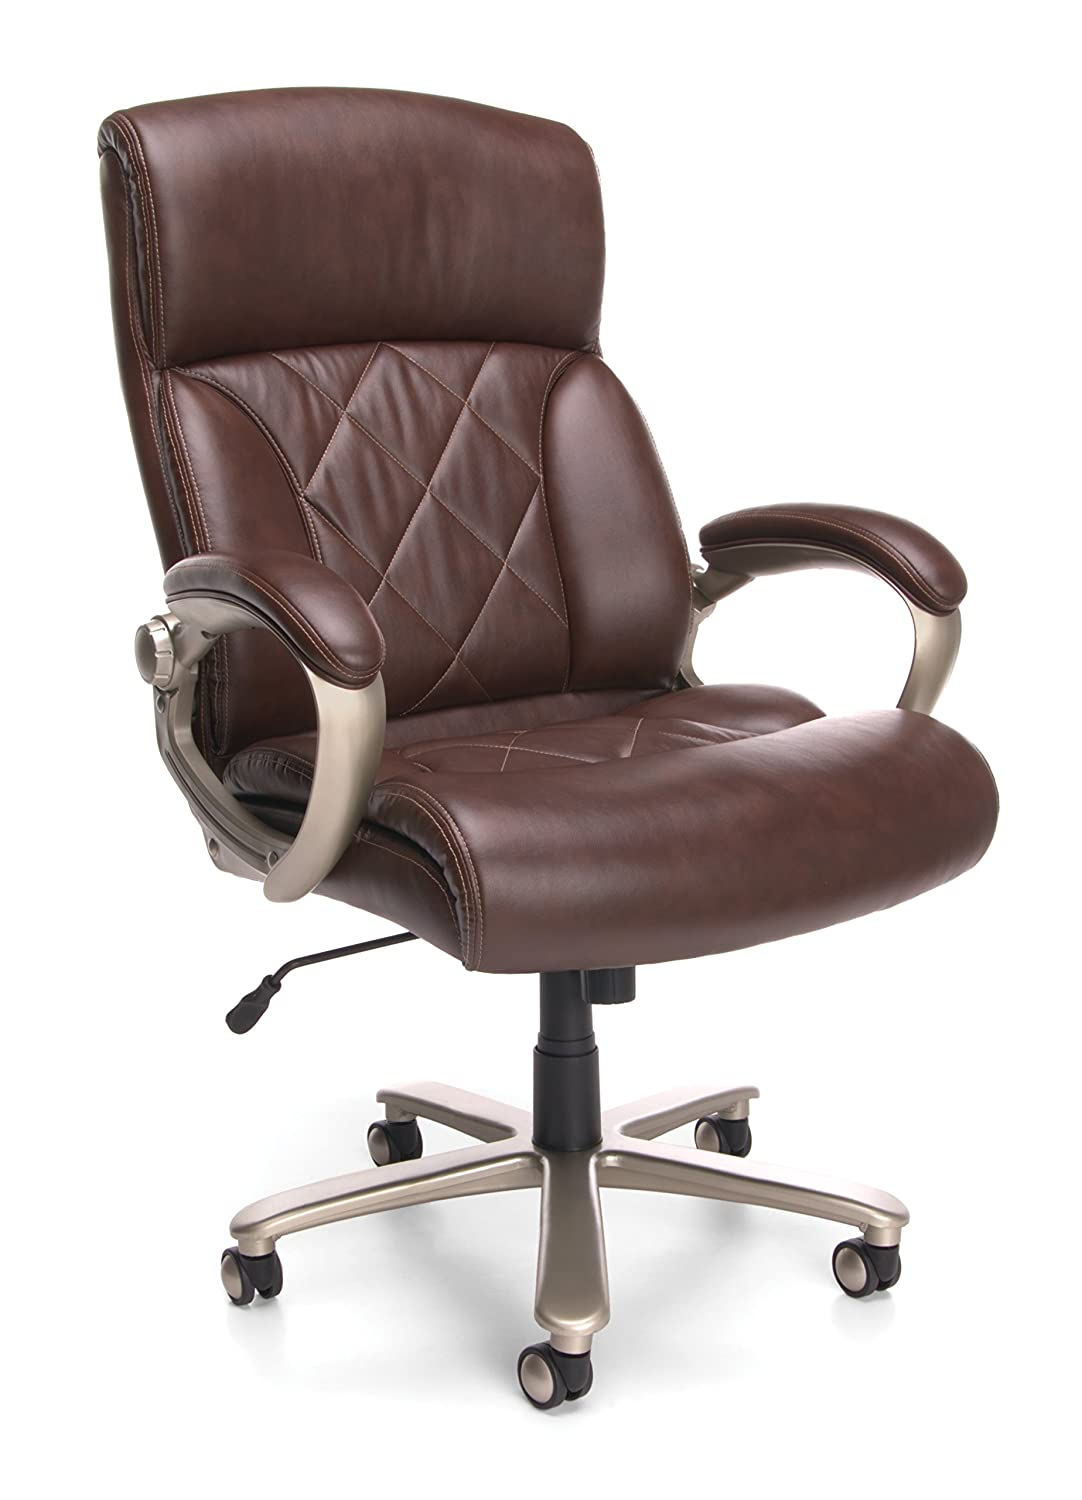 OFM Avenger Series Big and Tall Leather Executive Chair – Brown Leather Computer Chair with Arms 812-LX